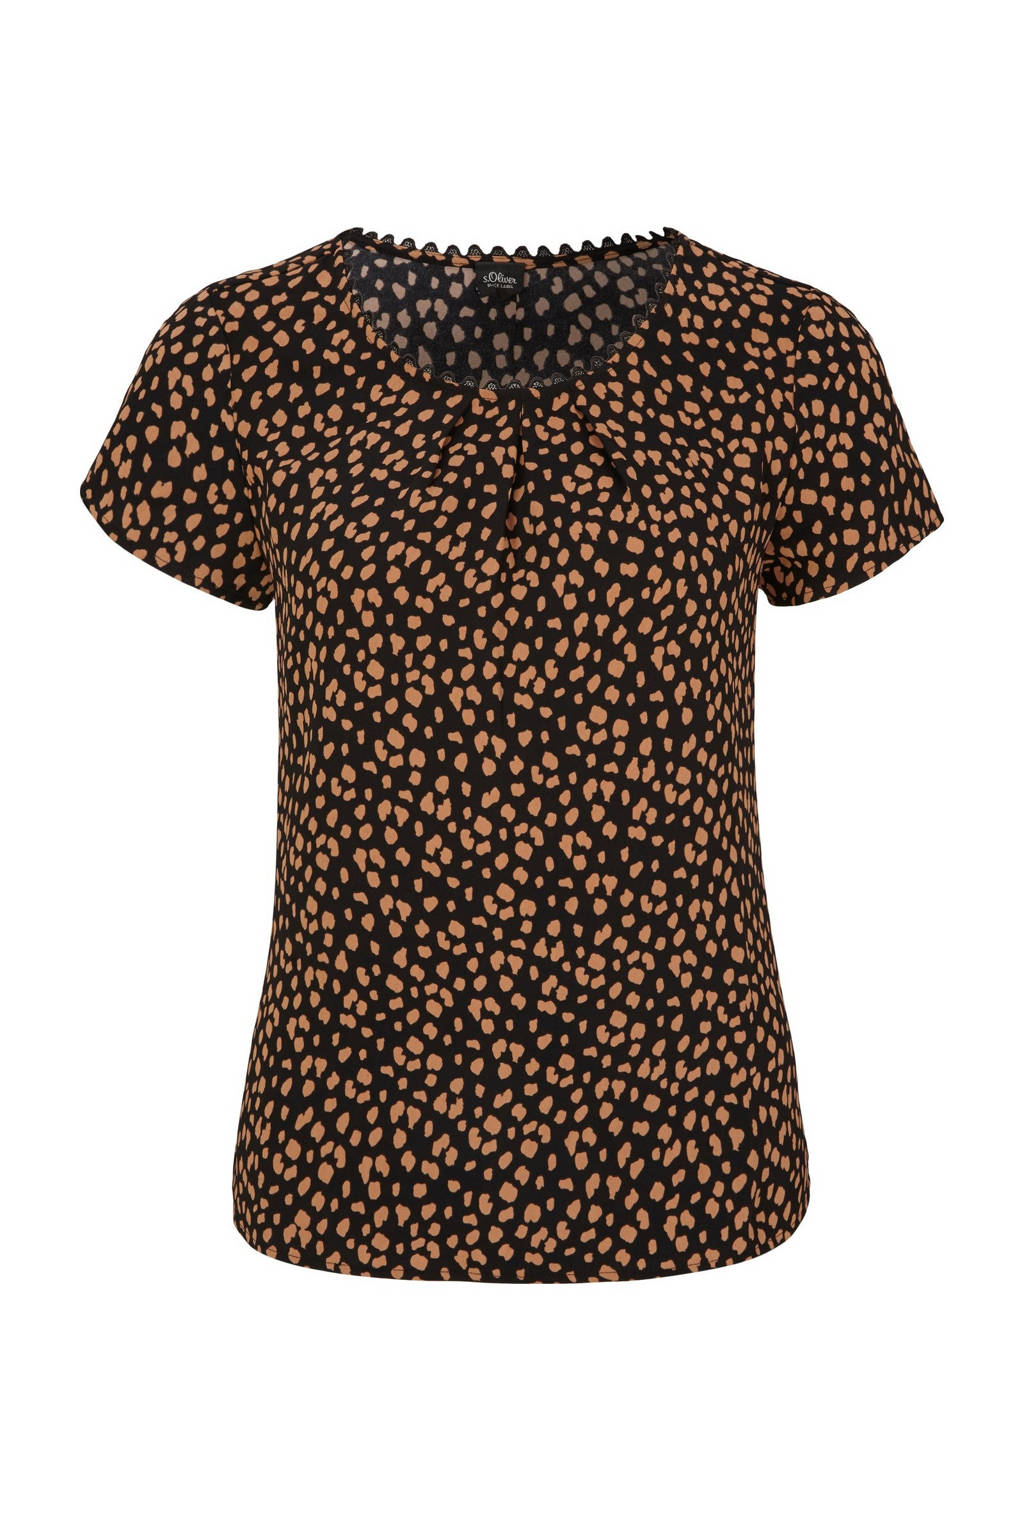 s.Oliver BLACK LABEL top met all over print zwart/oranje, Zwart/oranje